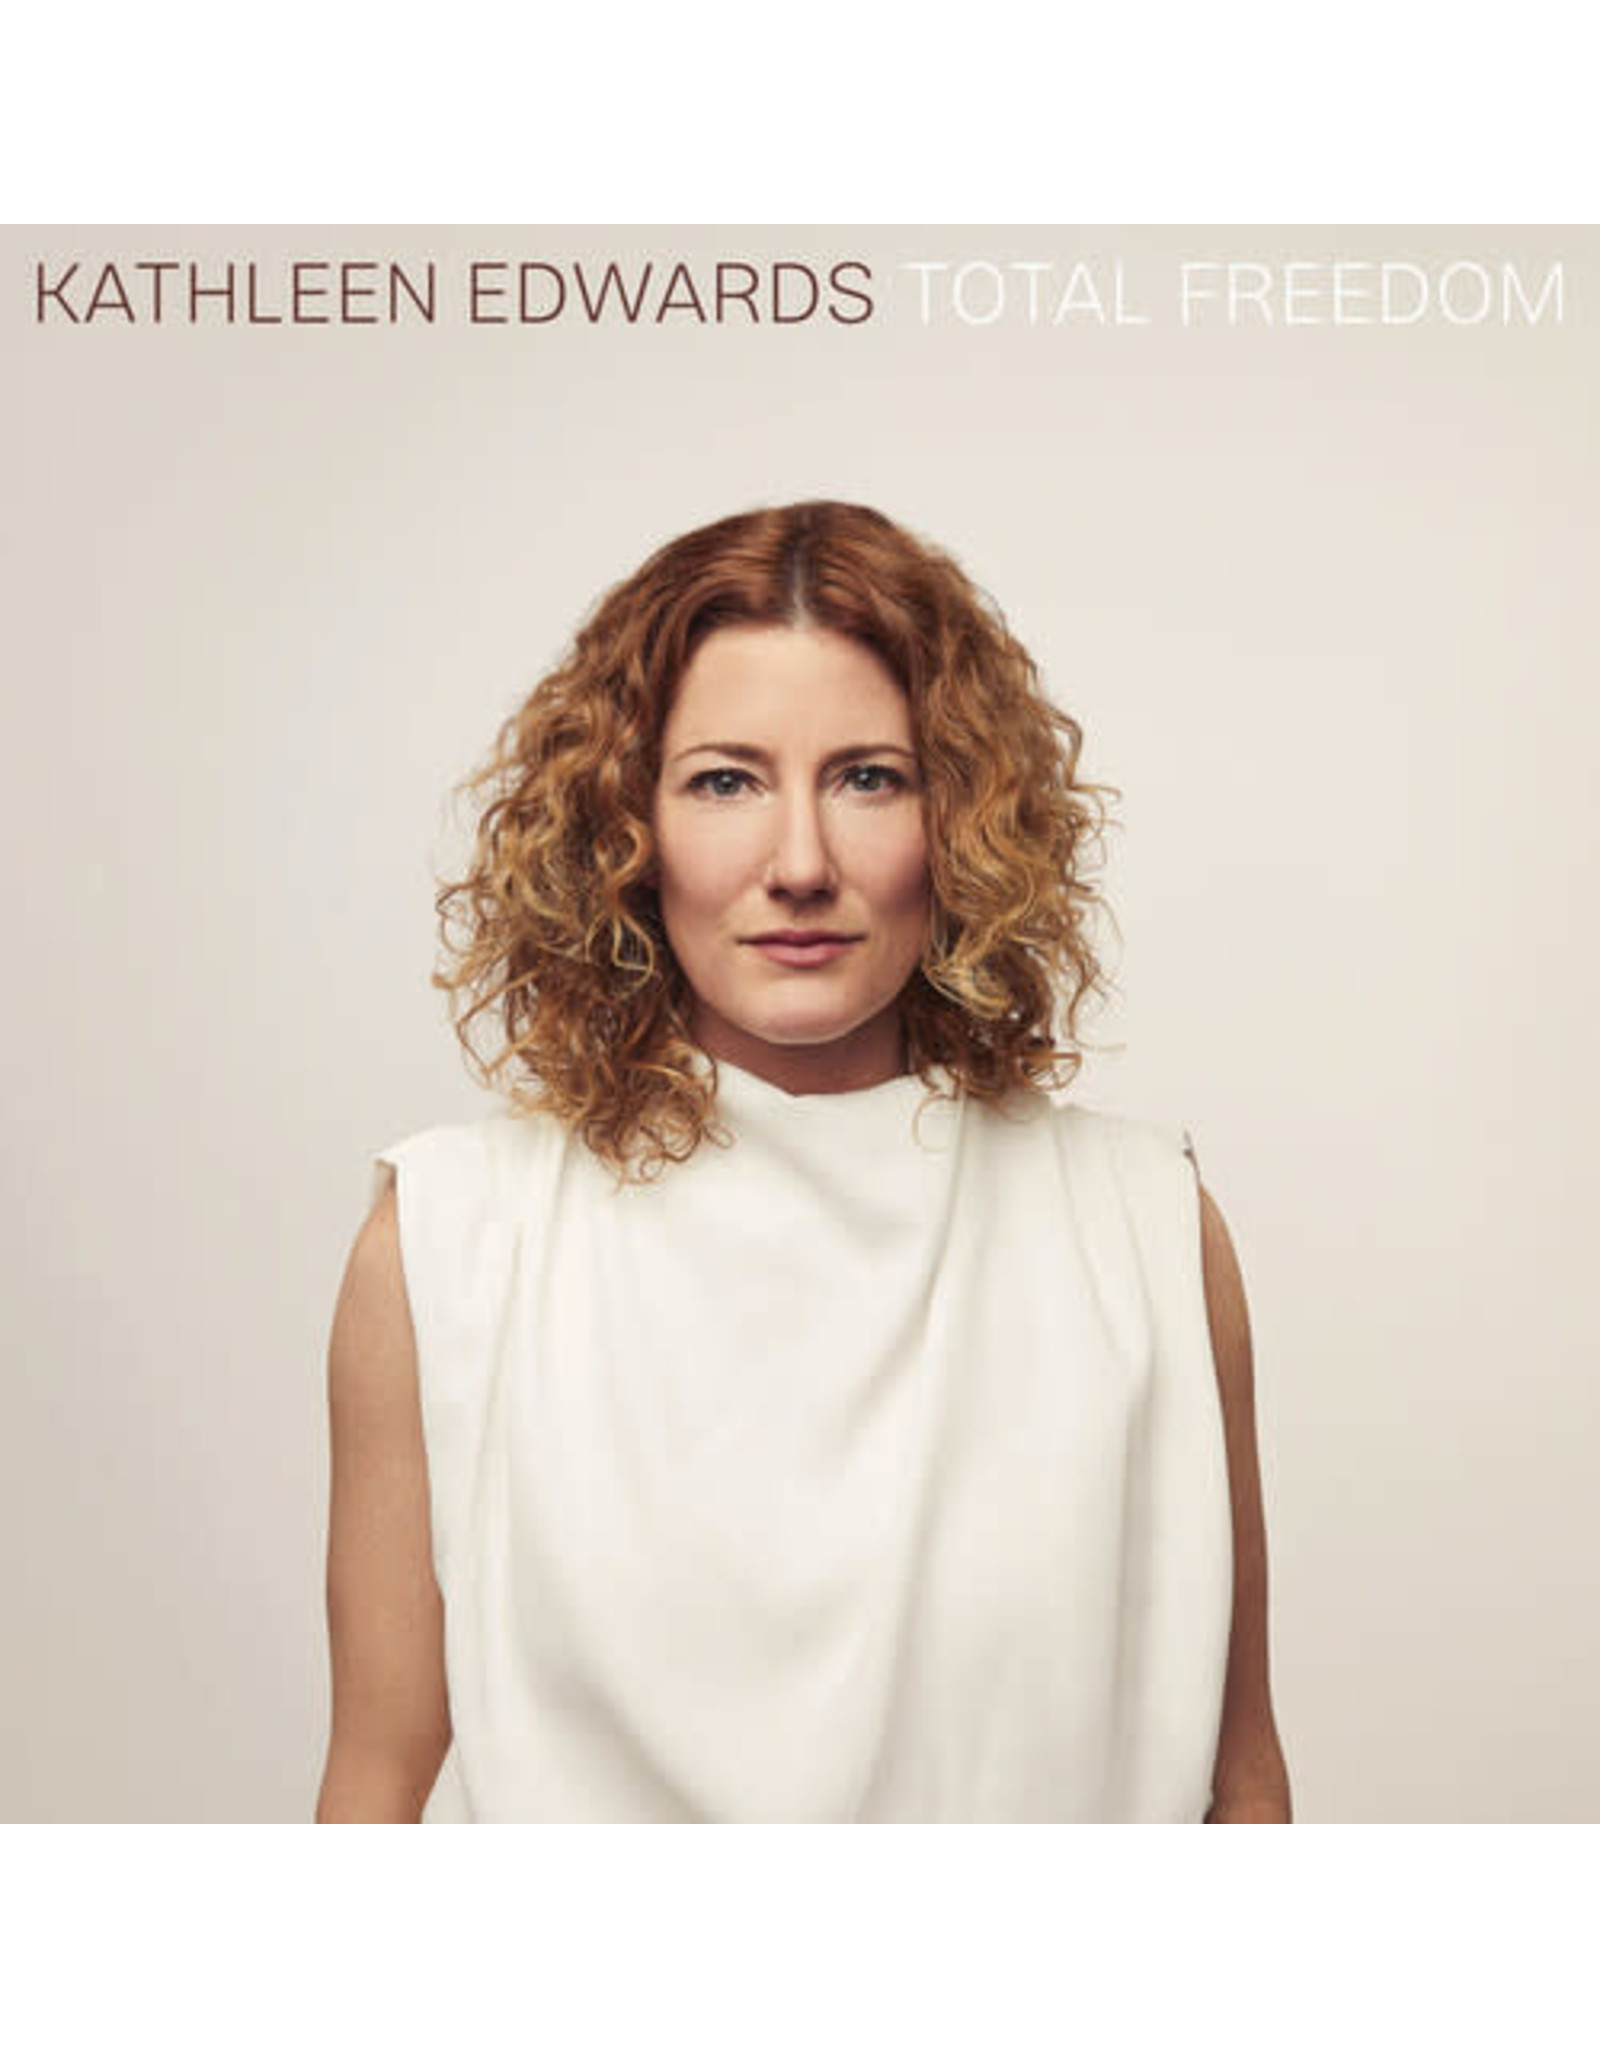 Edwards, Kathleen - Total Freedom CD